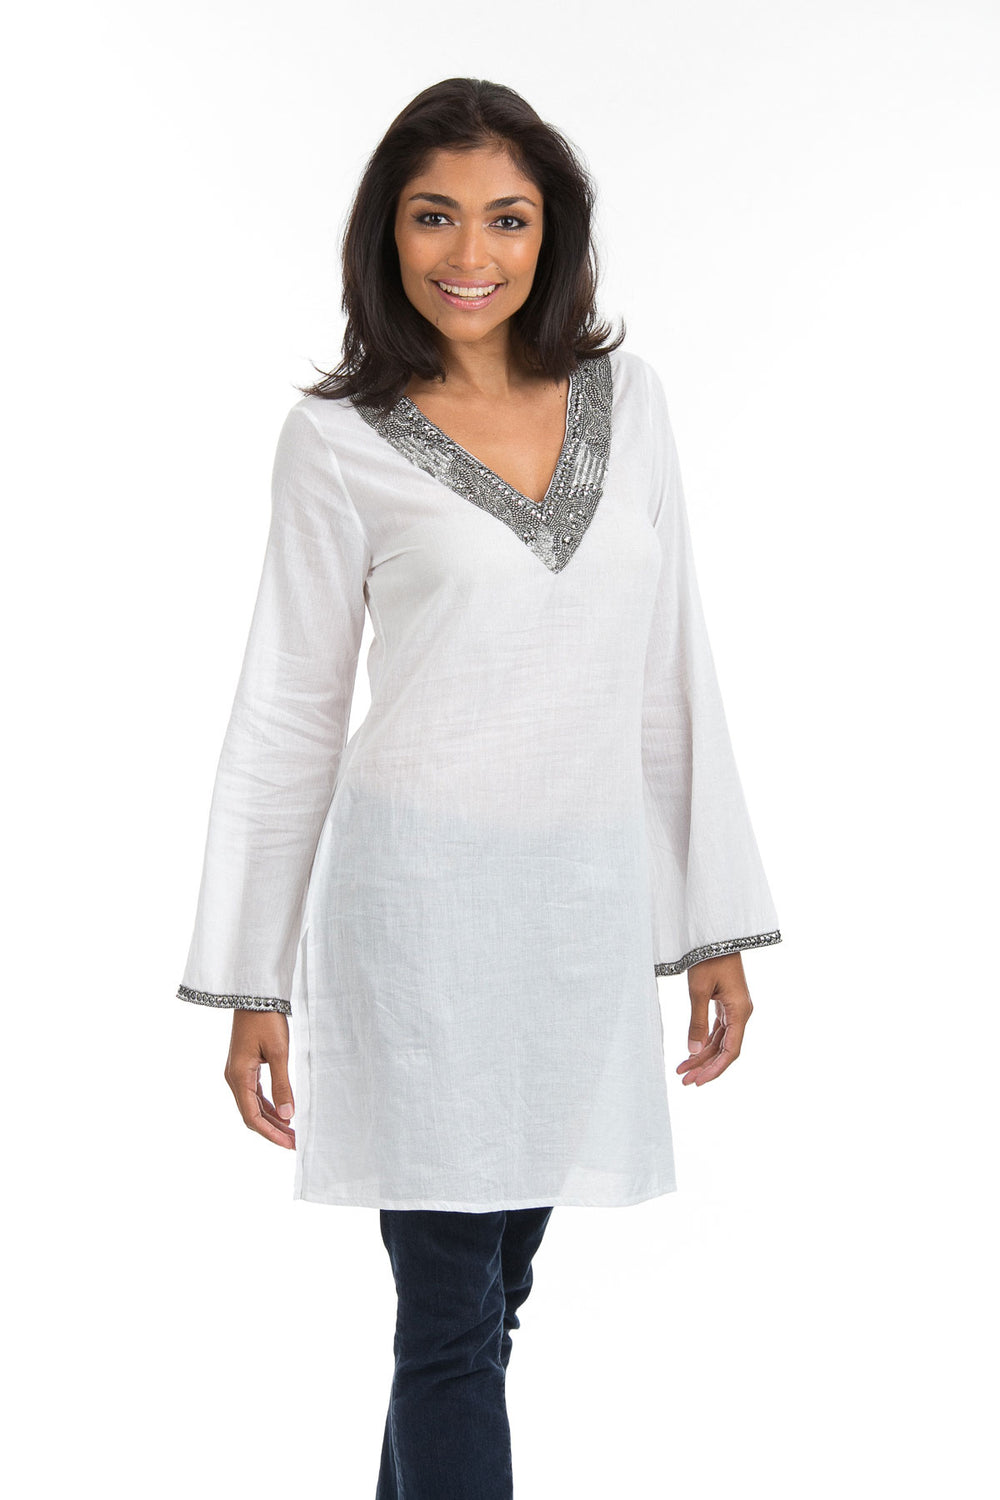 Cotton Inspiration Tunic White with Pants